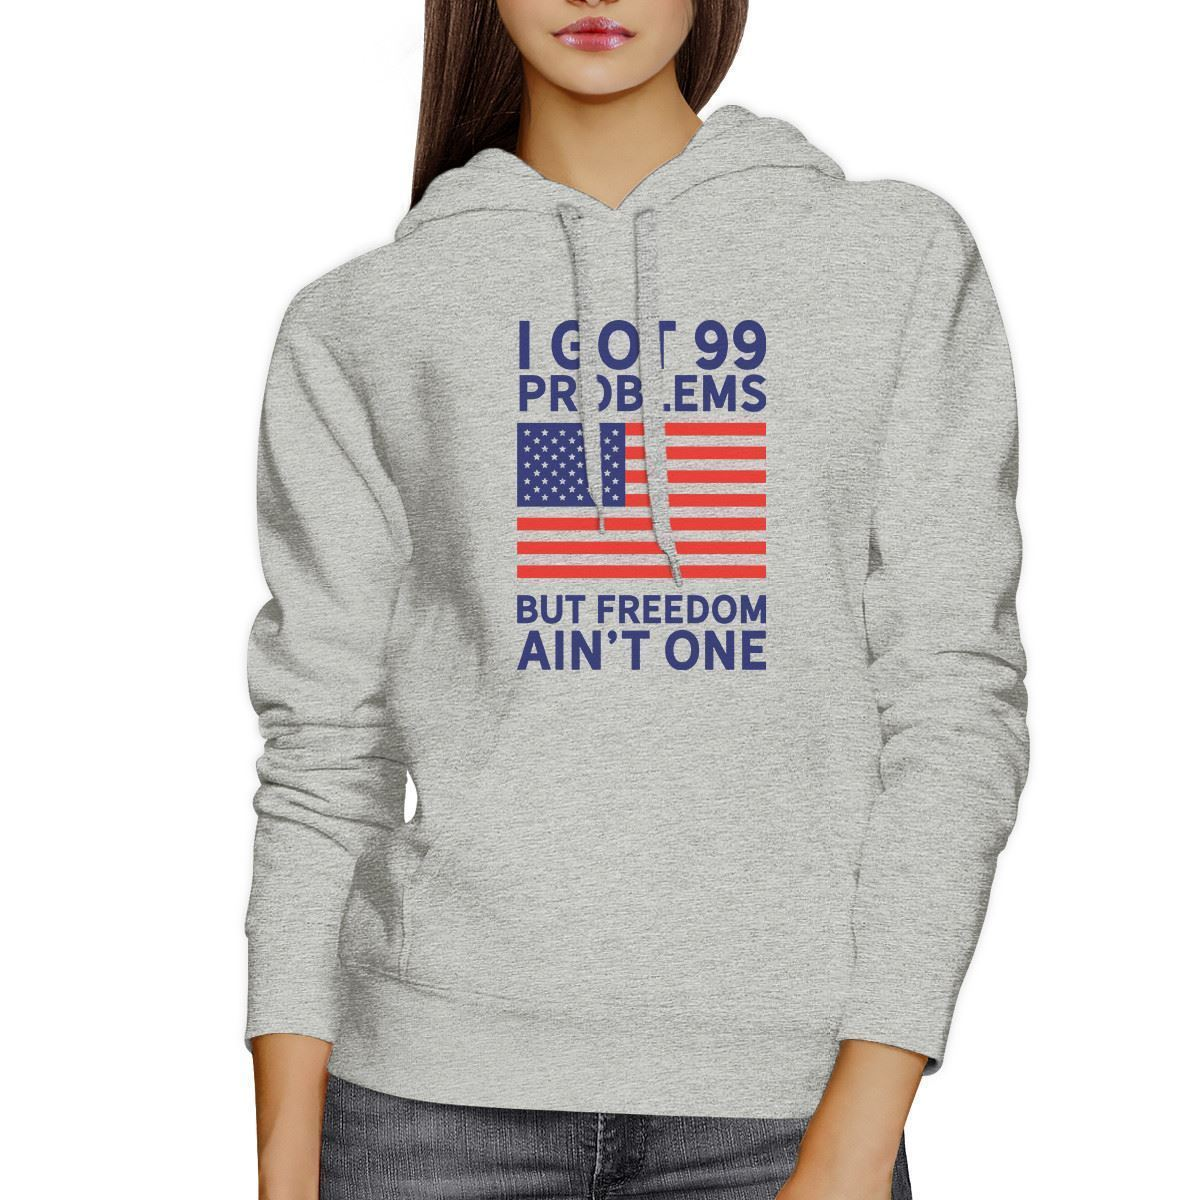 Freedom Ain't One Unisex White Hoodie For Fourth Of July image 3